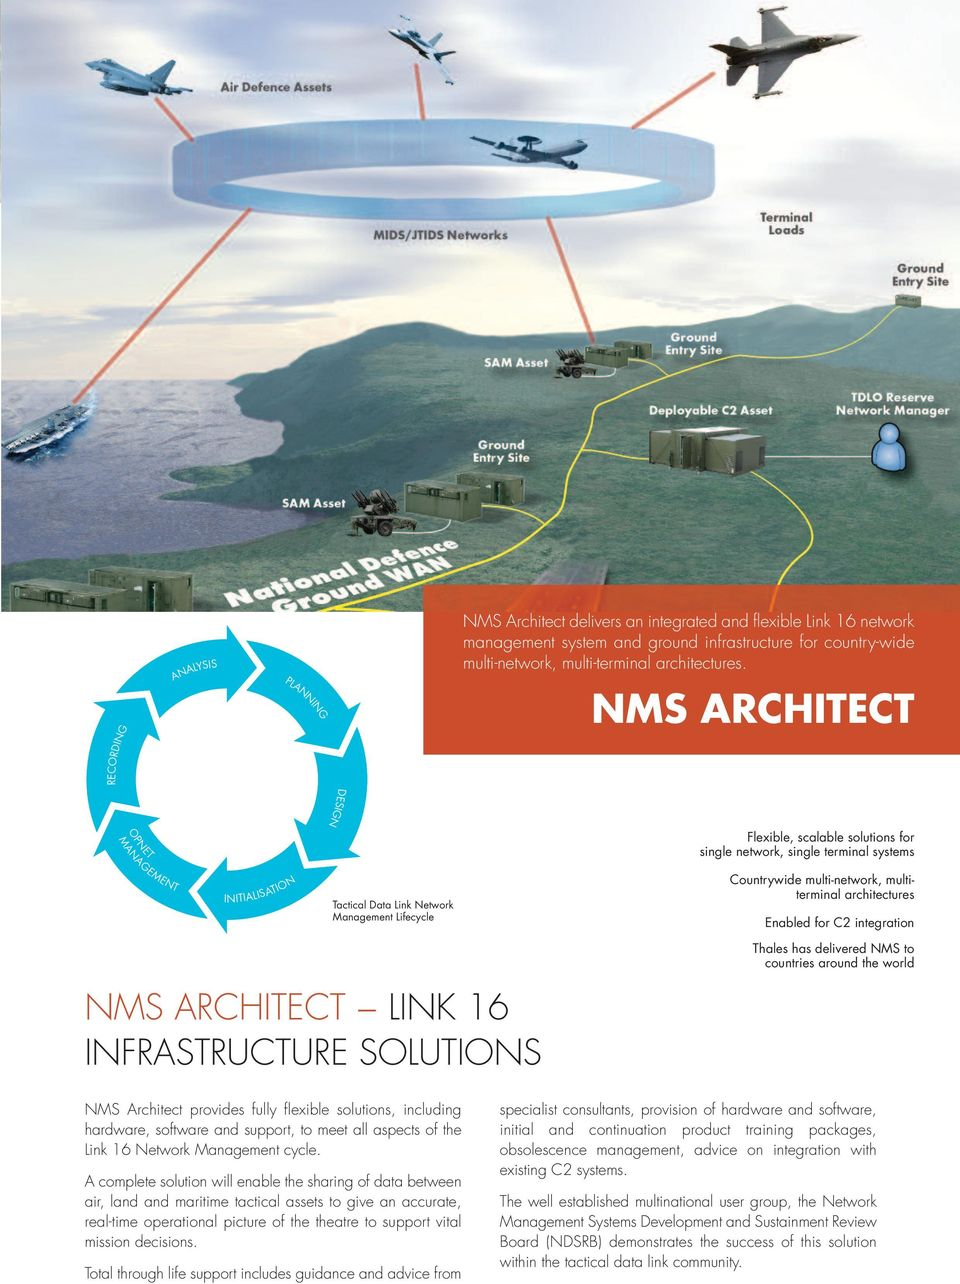 multi-network, multiterminal architectures Enabled for C2 integration NMS ARCHITECT LINK 16 INFRASTRUCTURE SOLUTIONS Thales has delivered NMS to countries around the world NMS Architect provides